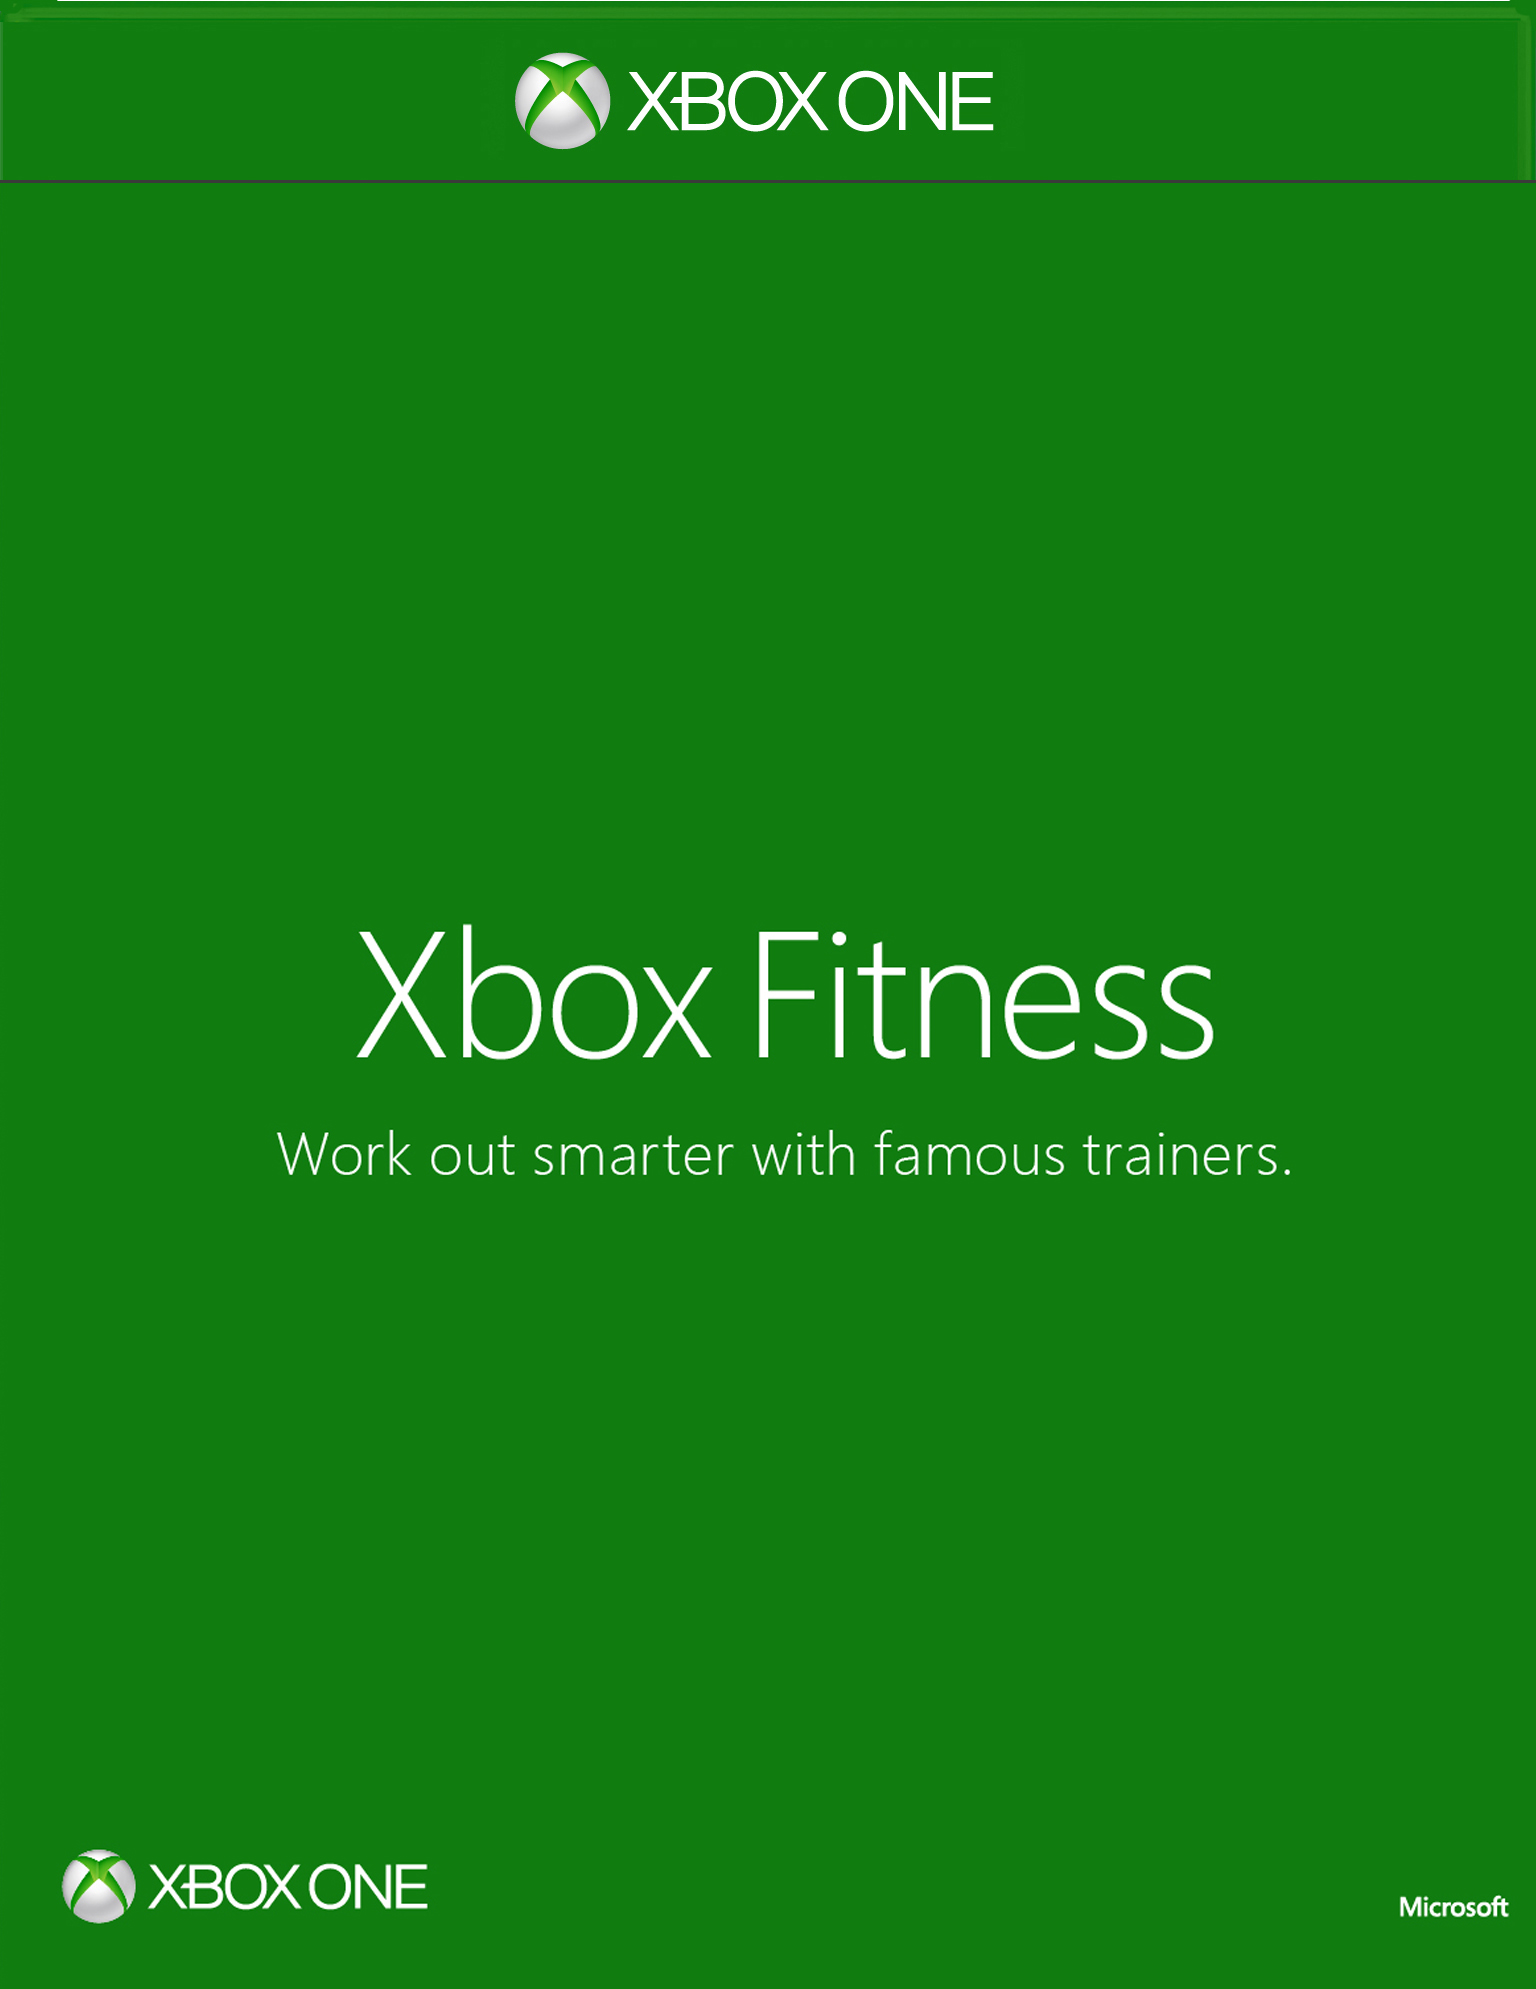 Xbox Fitness Box Art